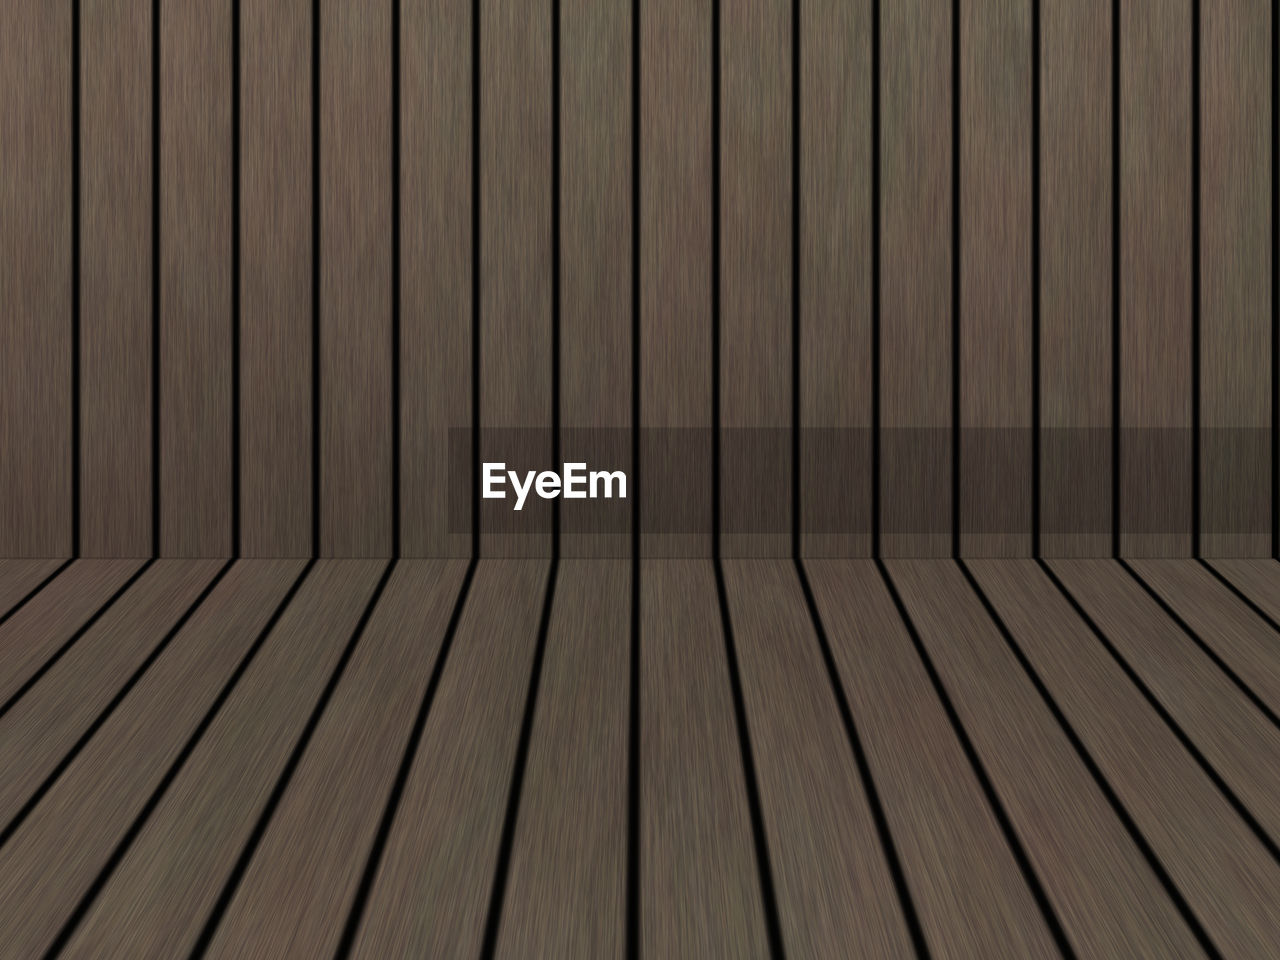 pattern, wood - material, full frame, backgrounds, wood, textured, no people, flooring, repetition, boardwalk, brown, floorboard, close-up, day, high angle view, indoors, plank, wood paneling, side by side, footpath, wood grain, textured effect